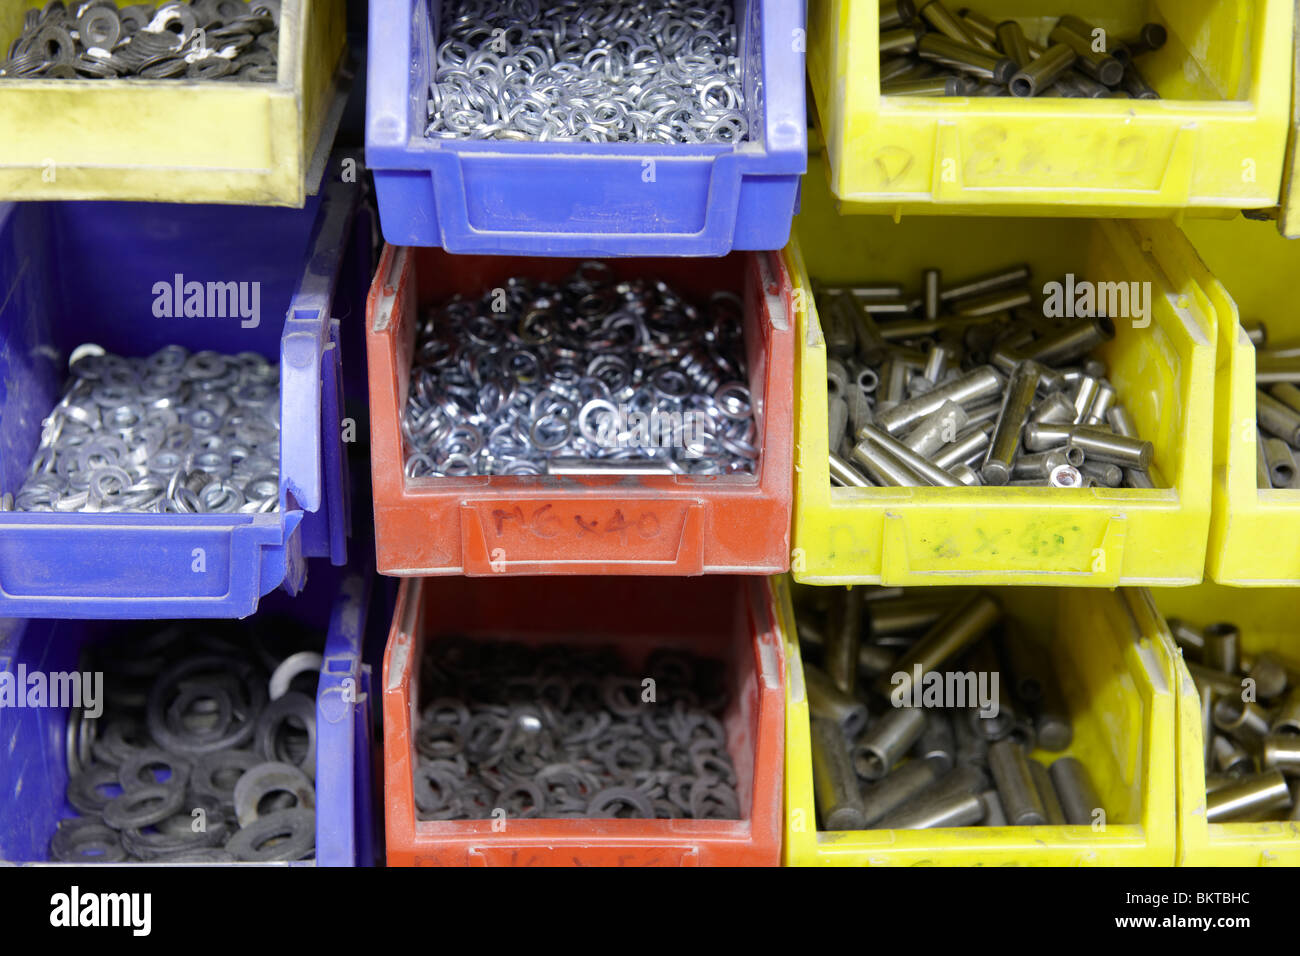 metal washers in different coloured storage trays on factory floor - Stock Image